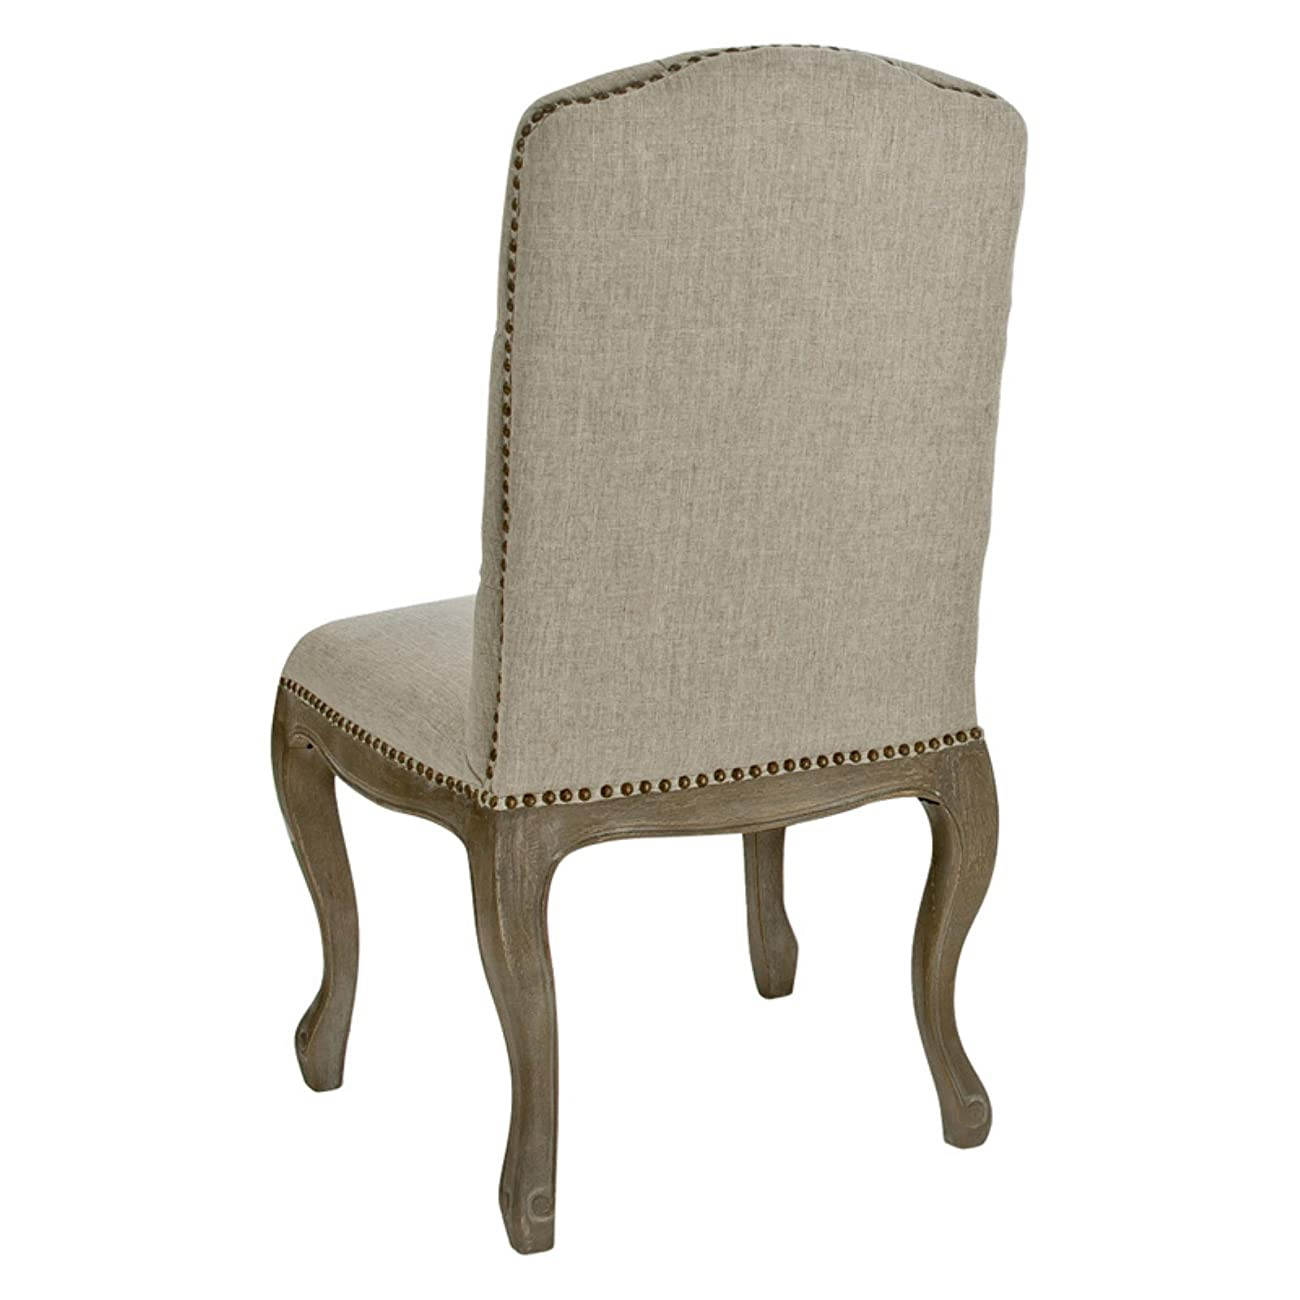 Best Selling Tufted Fabric Weathered Hardwood Dining Chair, Beige, Set of 2 1